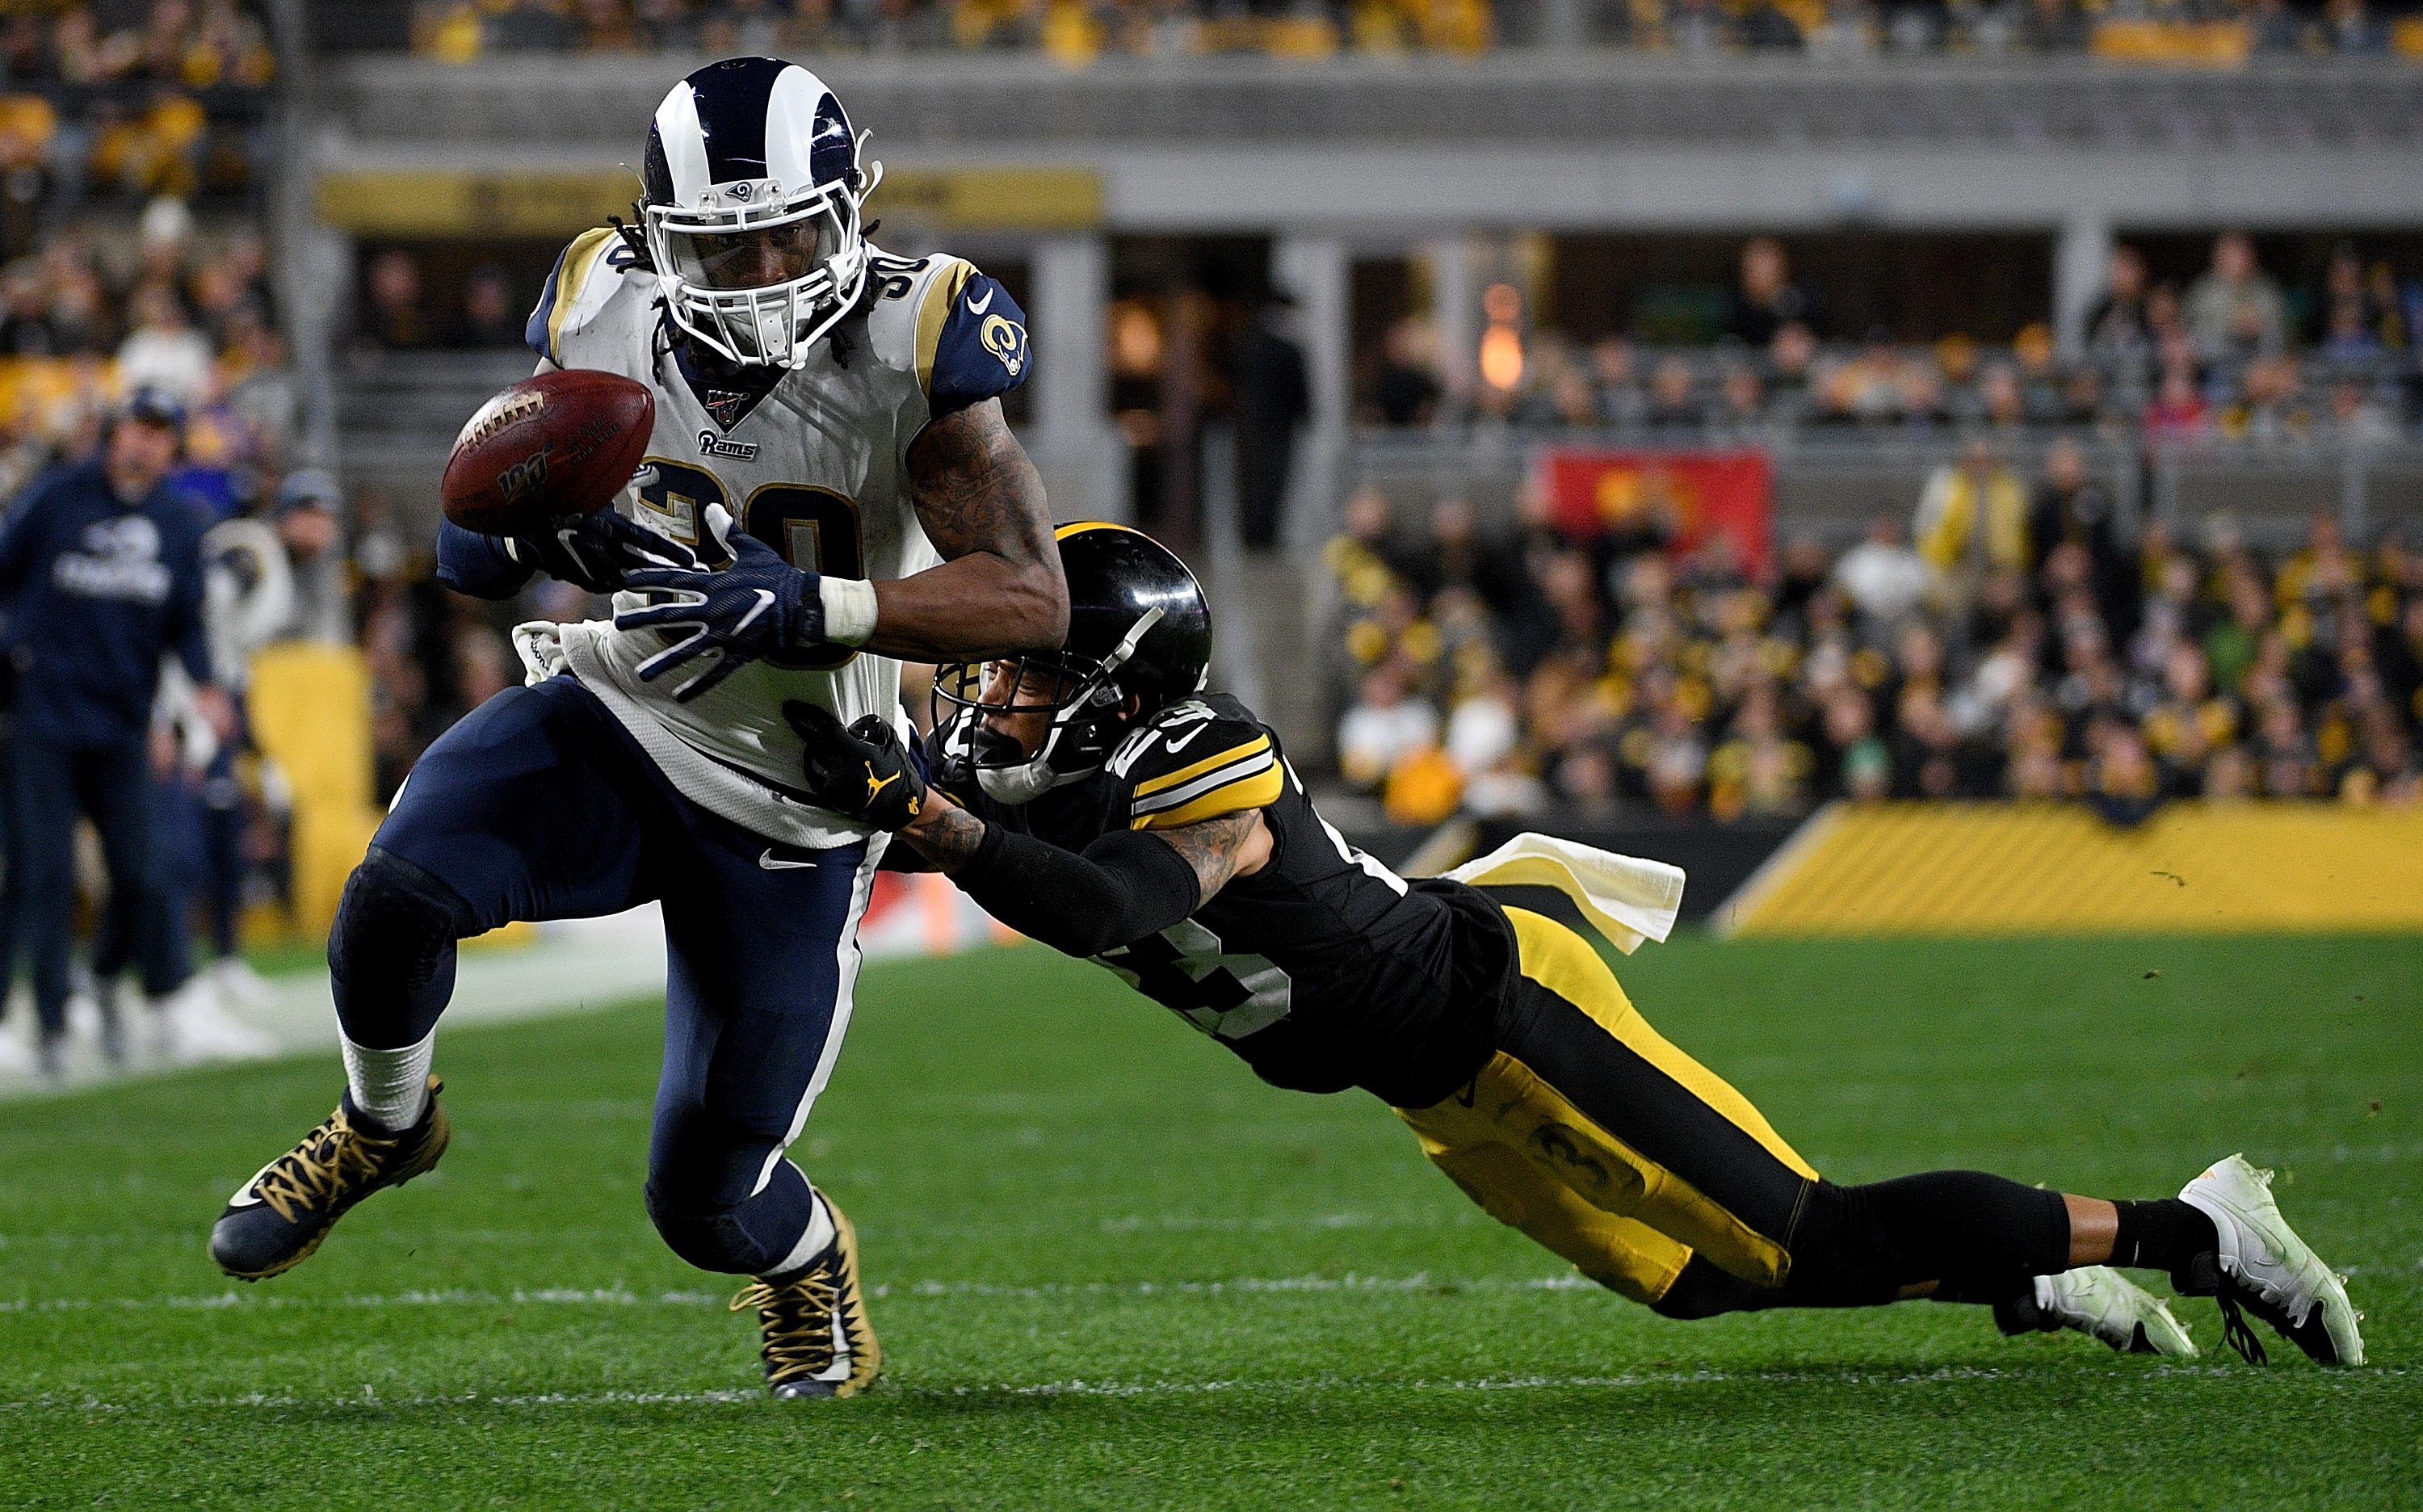 Los Angeles Rams RB Todd Gurley loses the ball as  Pittsburgh Steelers DB Joe Haden attempts to bring him down in Week 10, Nov. 10, 2019.